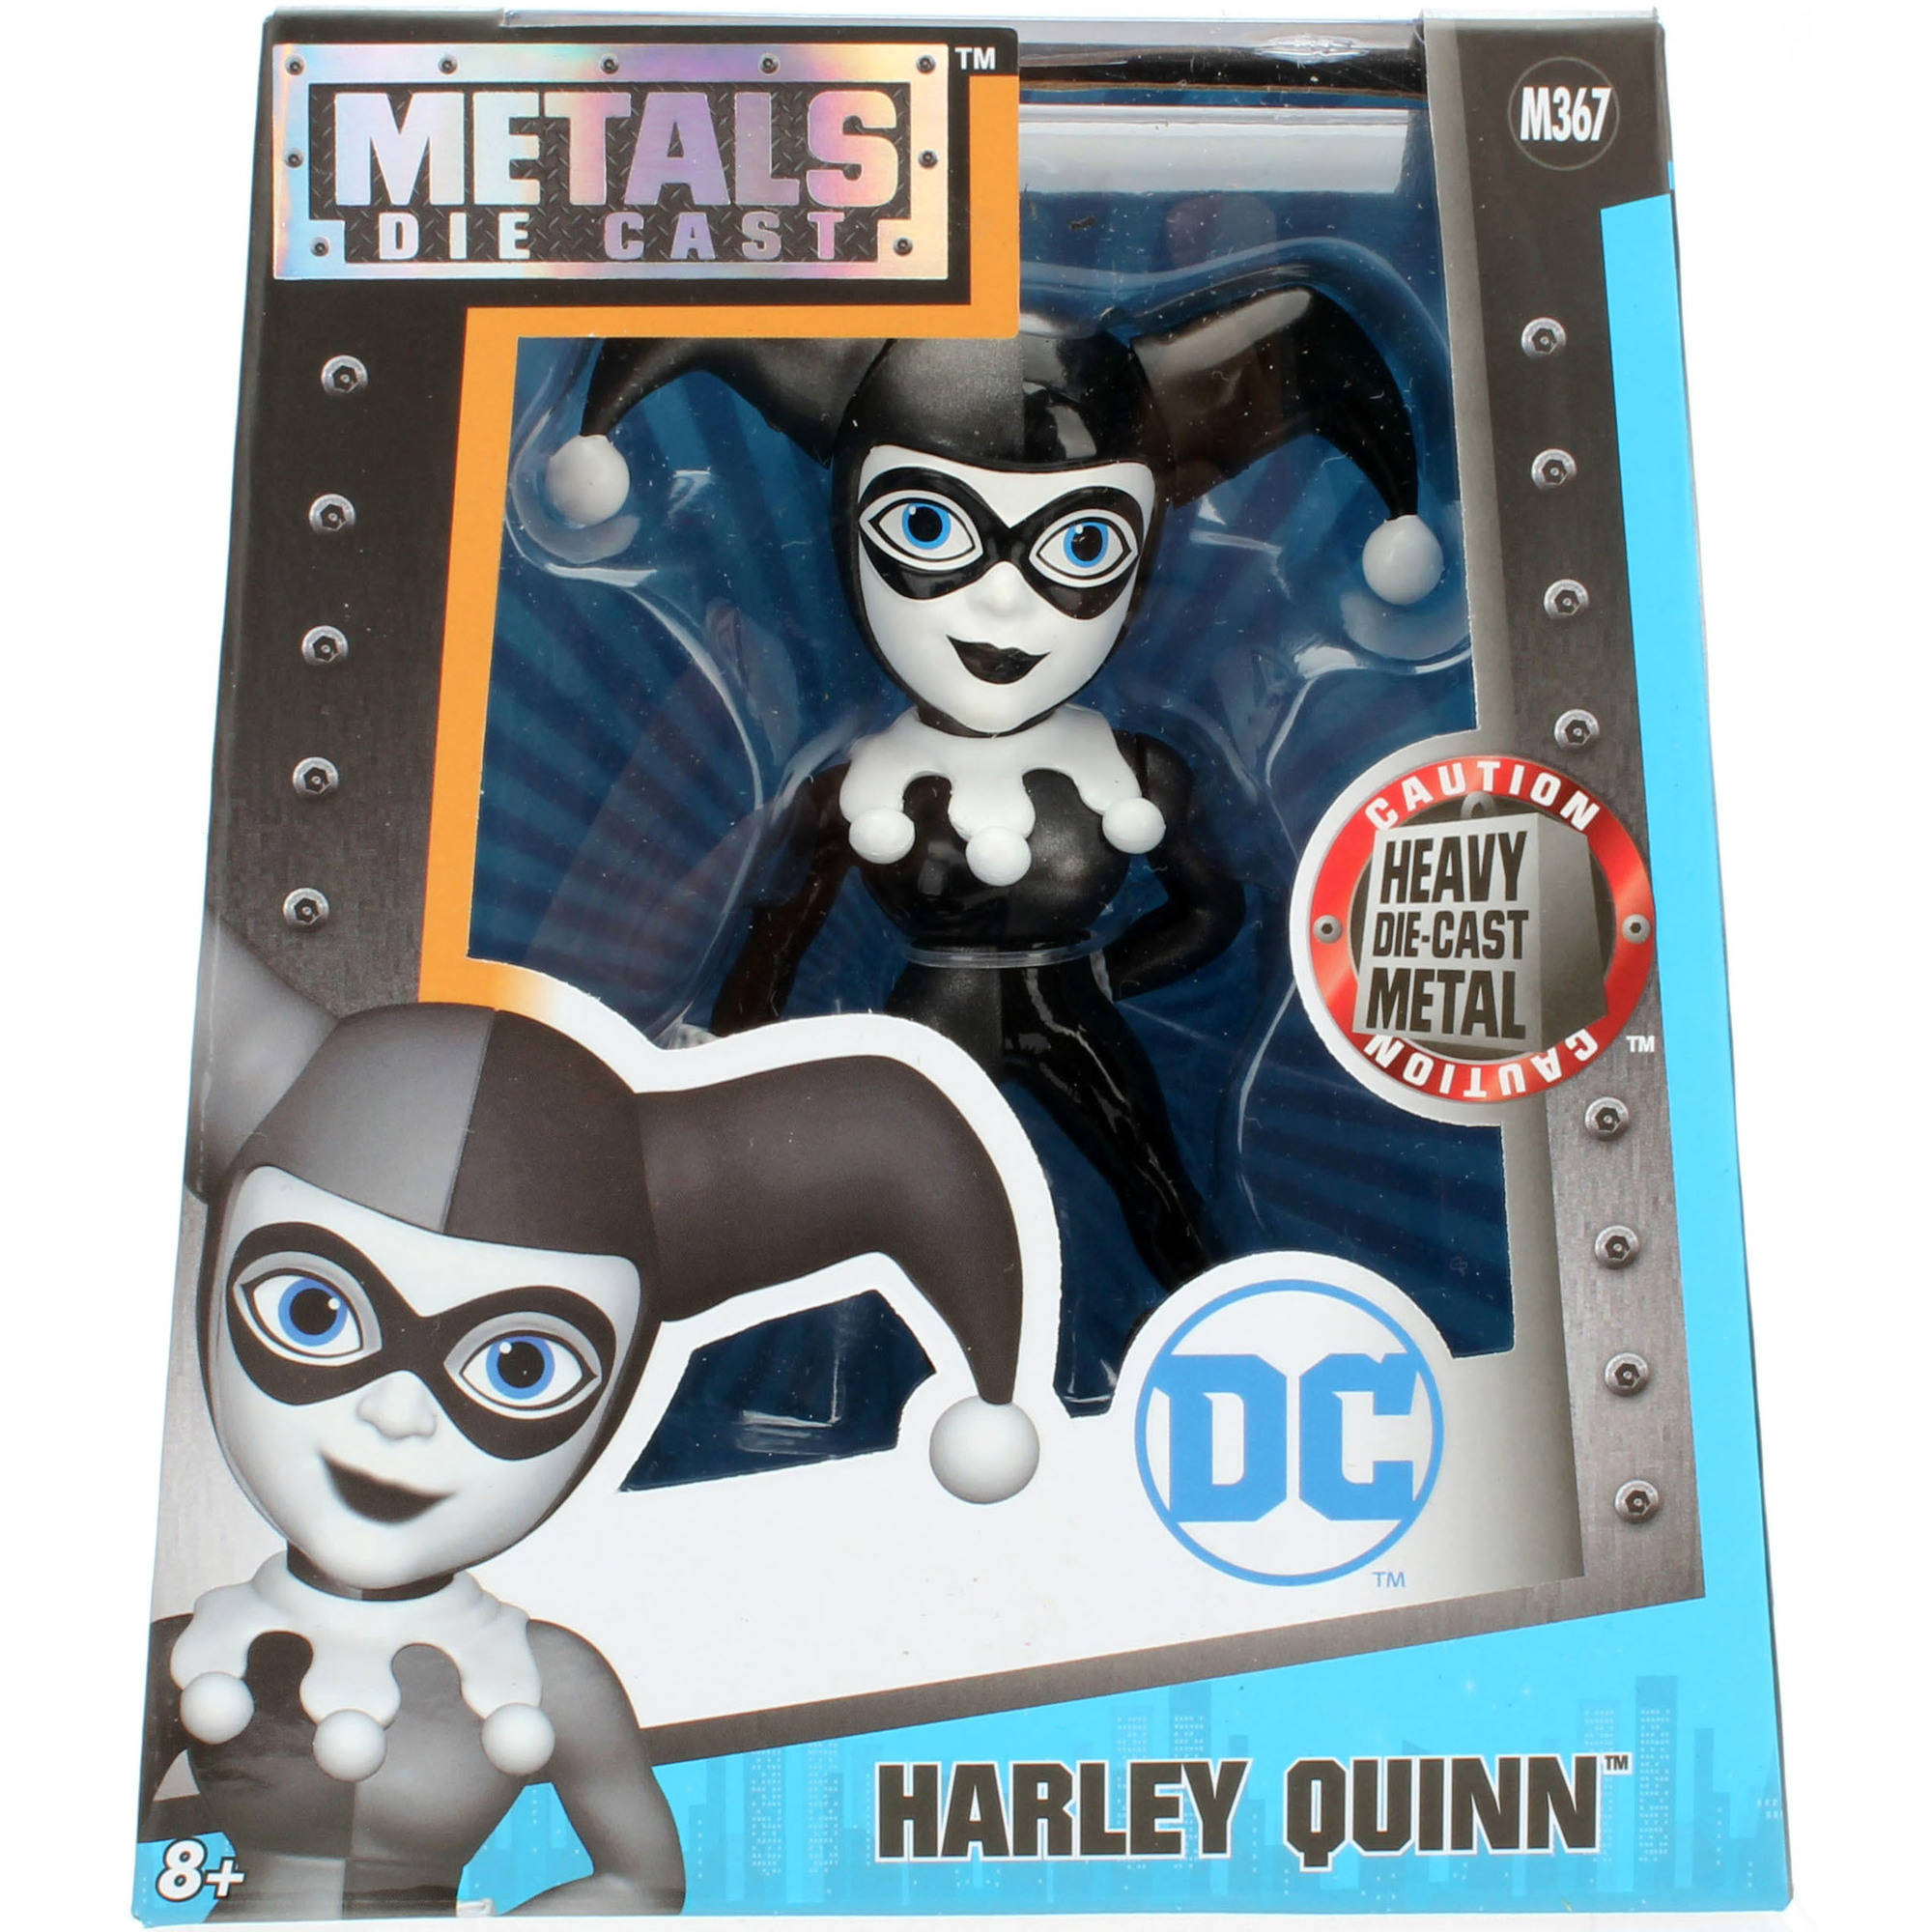 "Metals Die Cast 4"" Harley Quinn Figure by"